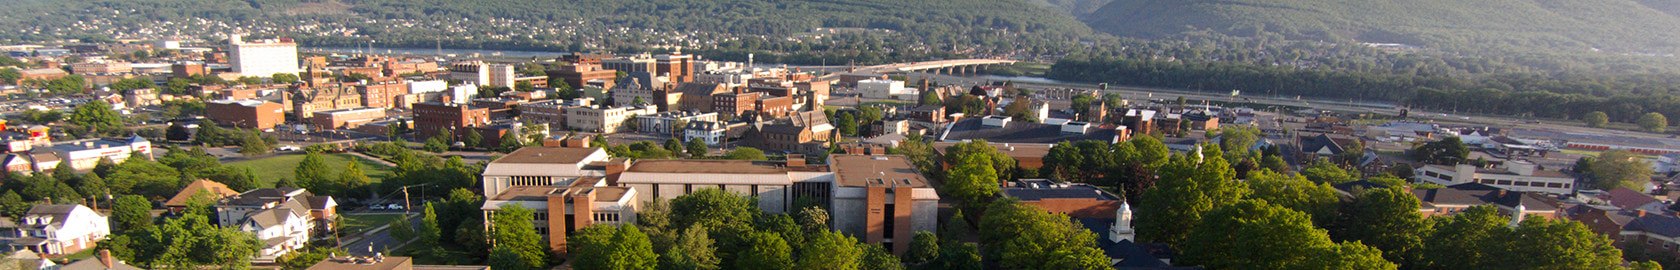 Aerial view of campus with 威廉姆斯port, the Susquehanna River and Bald Eagle Mountain as a backdrop